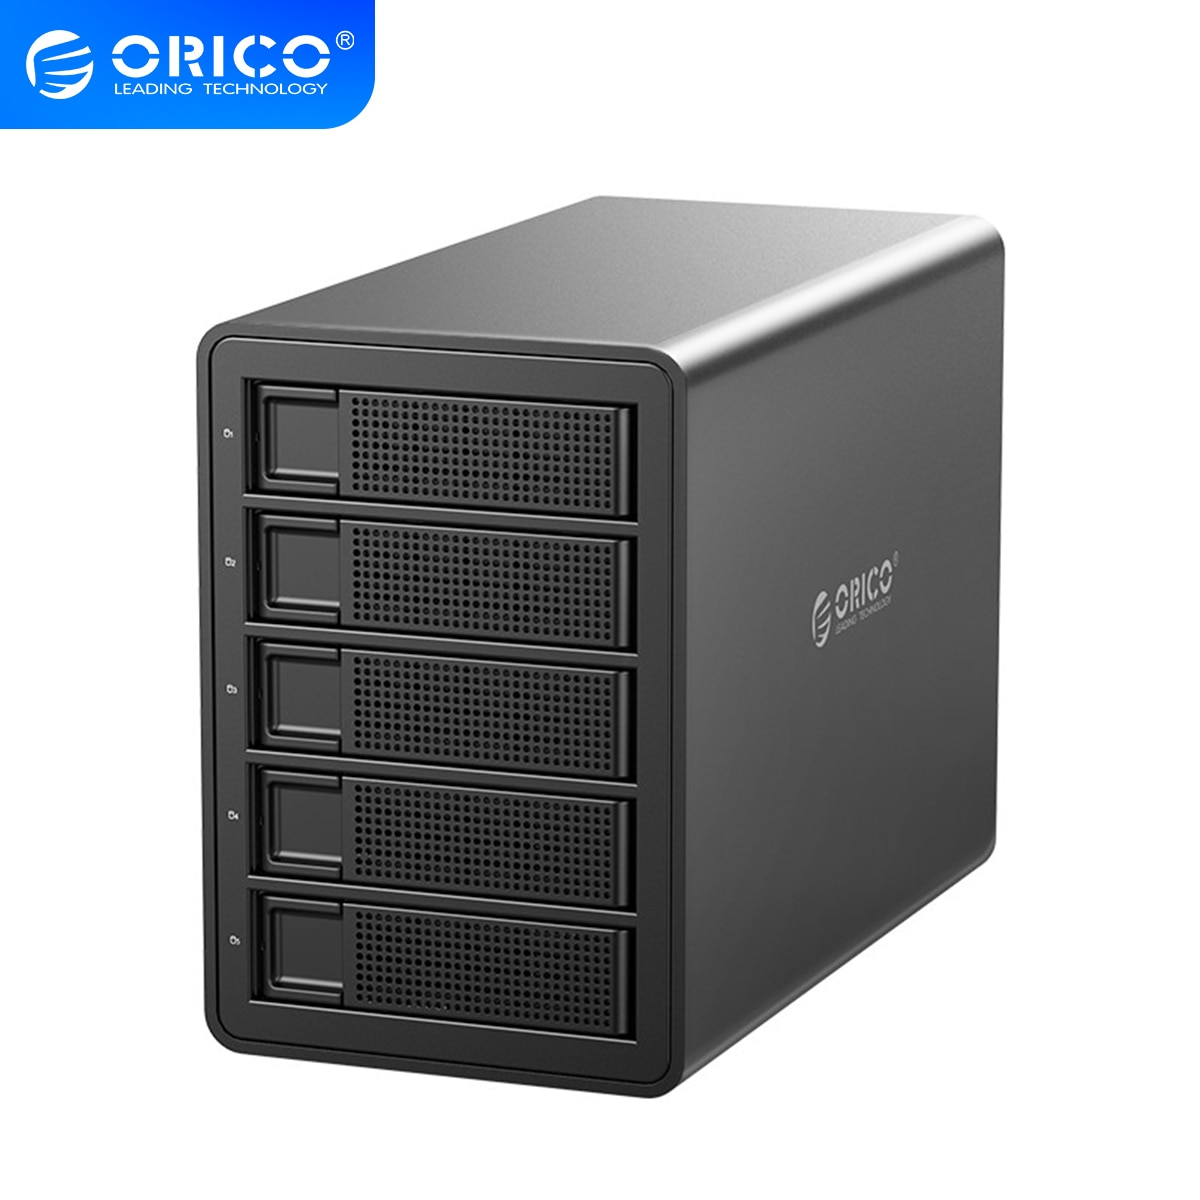 ORICO 35 Series 5 Bay HDD Docking Station 80TB With Dual Chip 150W Built-in Power Hard Drive Case For 2.5 3.5 Inch Hard Drive